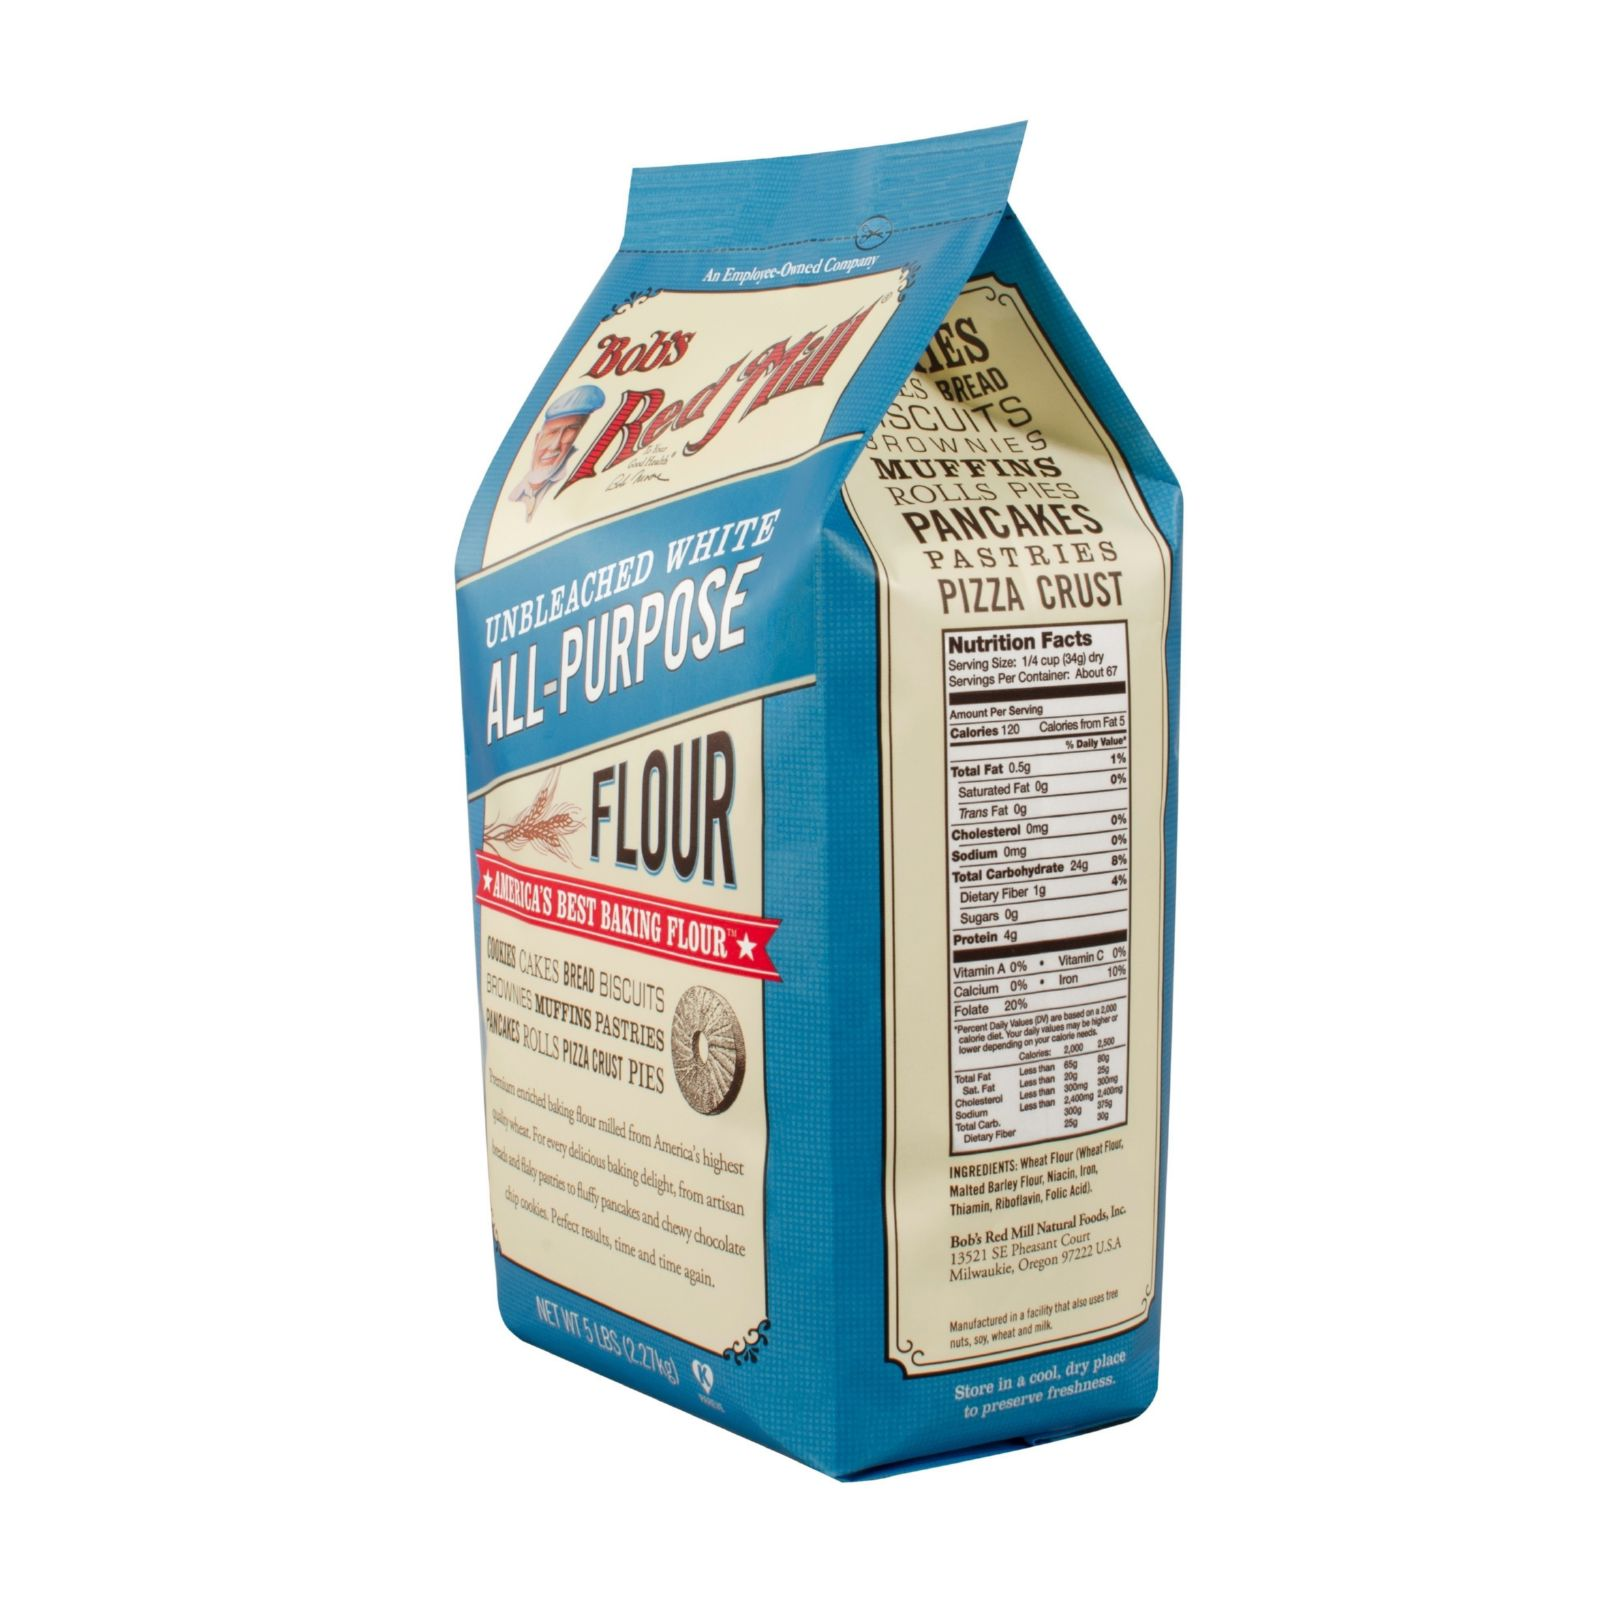 Bob's Red Mill Unbleached White All-Purpose Flour, 80 oz